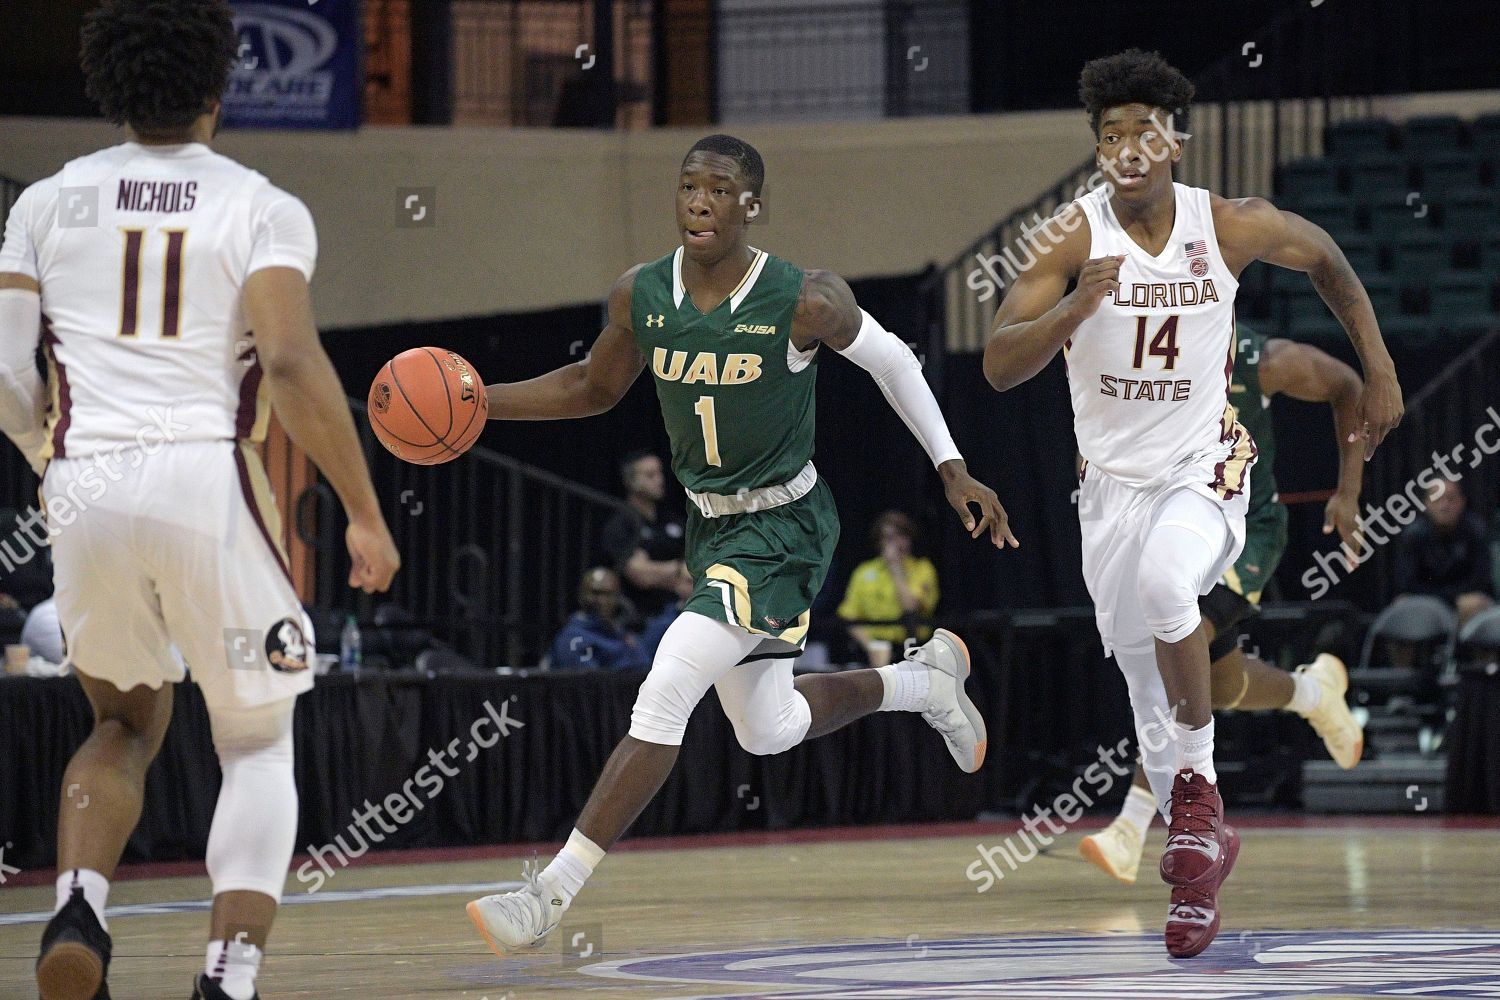 low priced a6ad2 8e817 UAB guard Zack Bryant 1 pushes ball Editorial Stock Photo ...